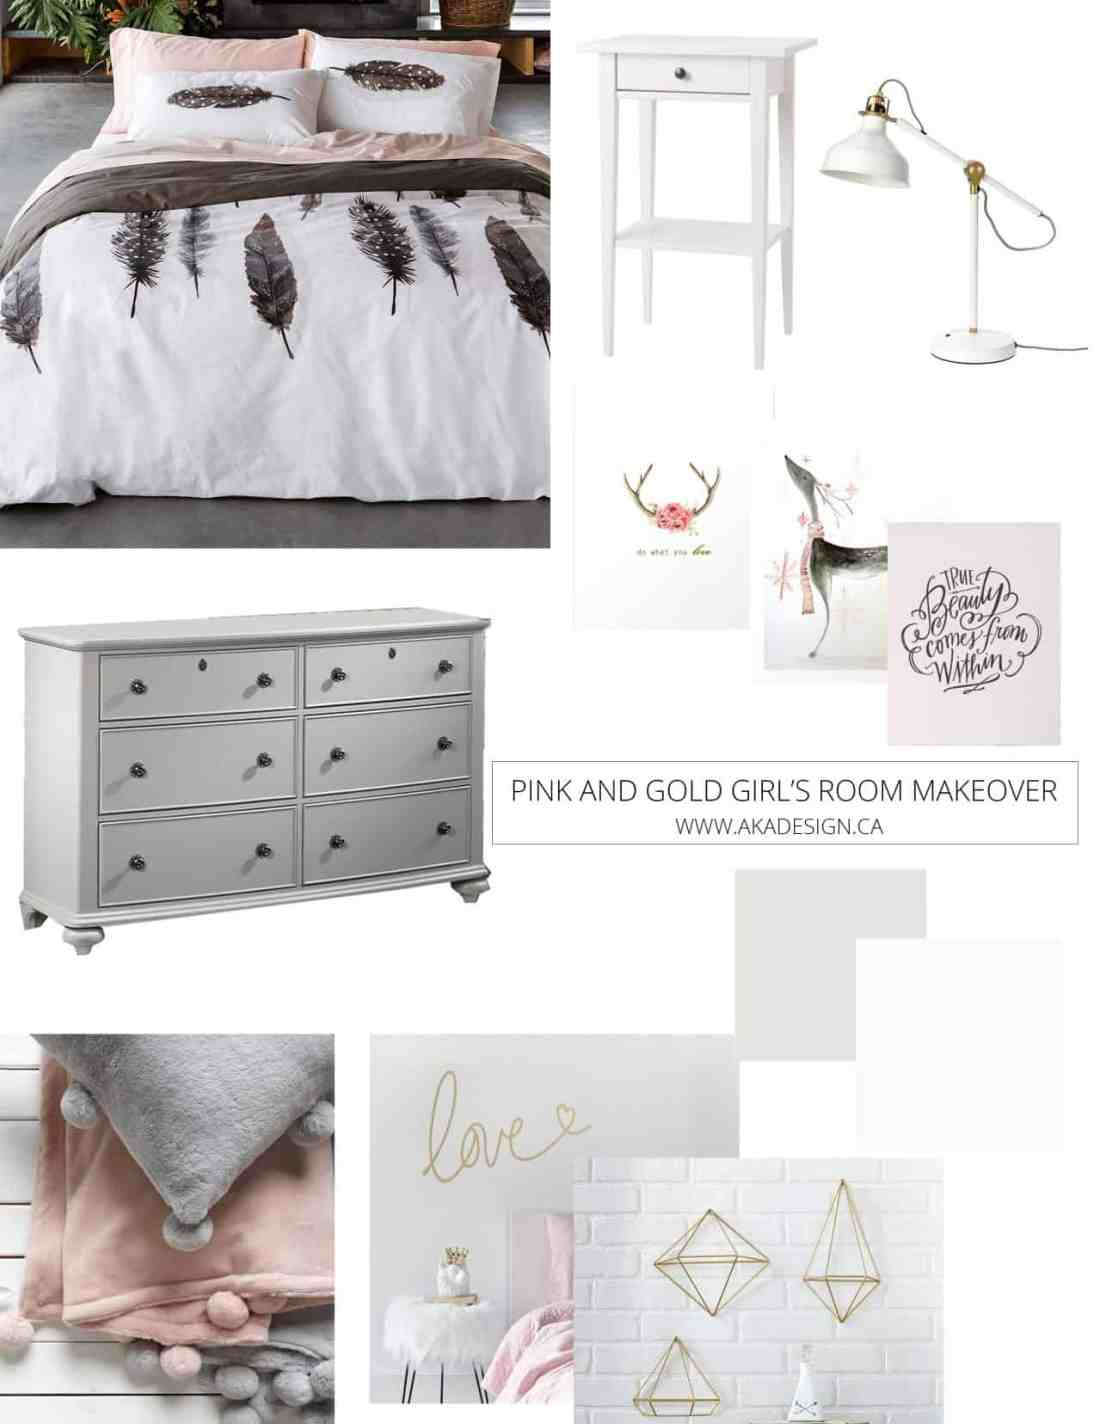 Pink and Gold Girl's Bedroom Makeover Inspiration